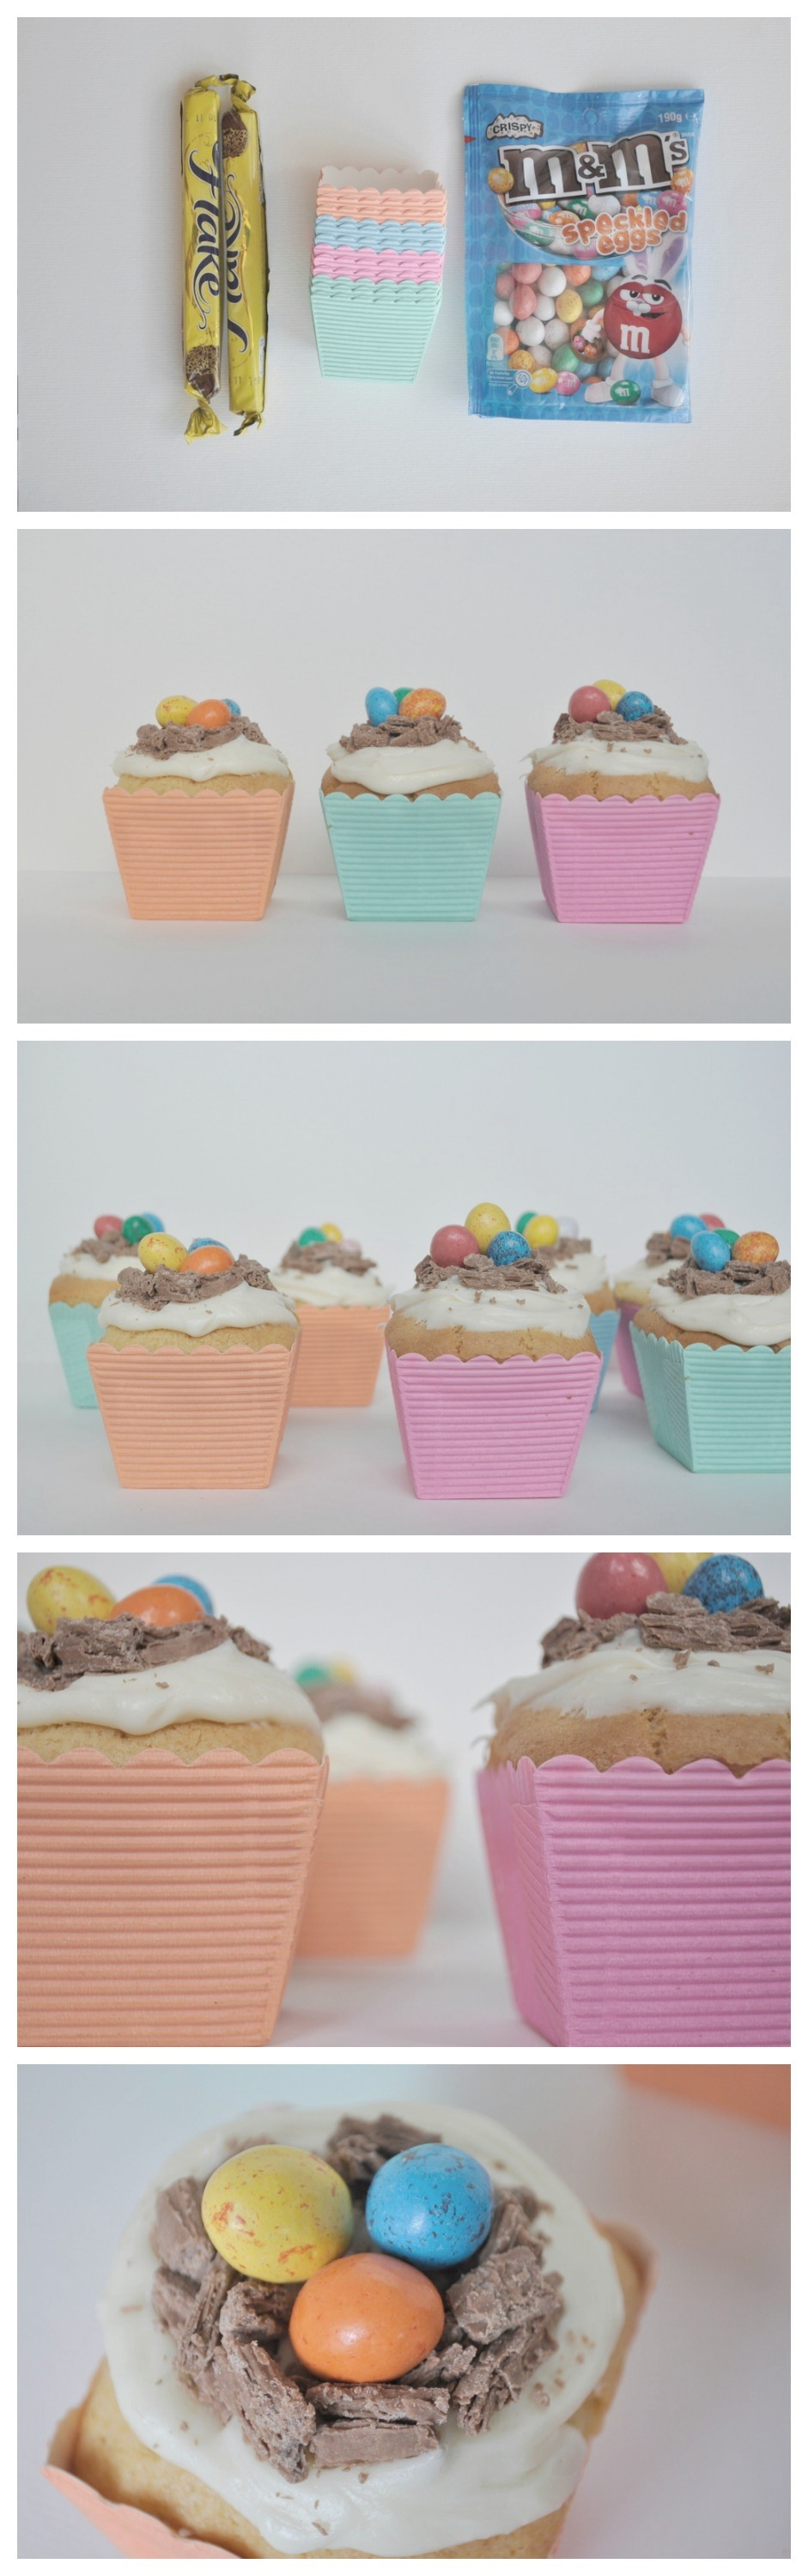 Easy nest cupcakes - Fun for Easter, baby shower or birthdays